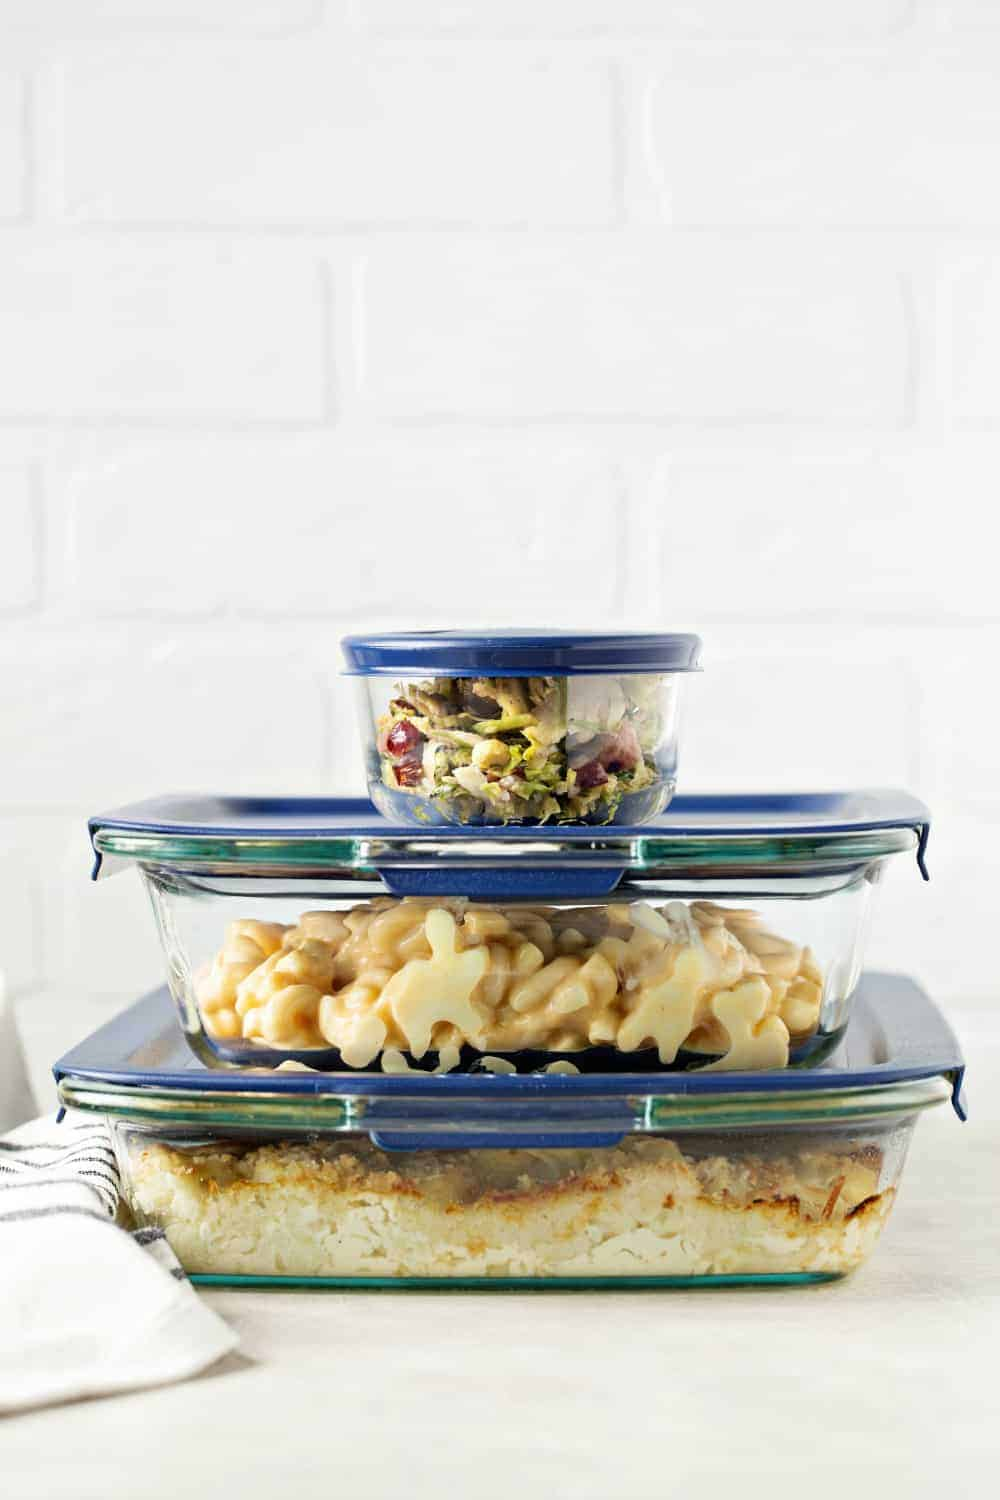 Cauliflower Gratin can be made ahead and stored in Pyrex to keep it fresh until the holiday meal